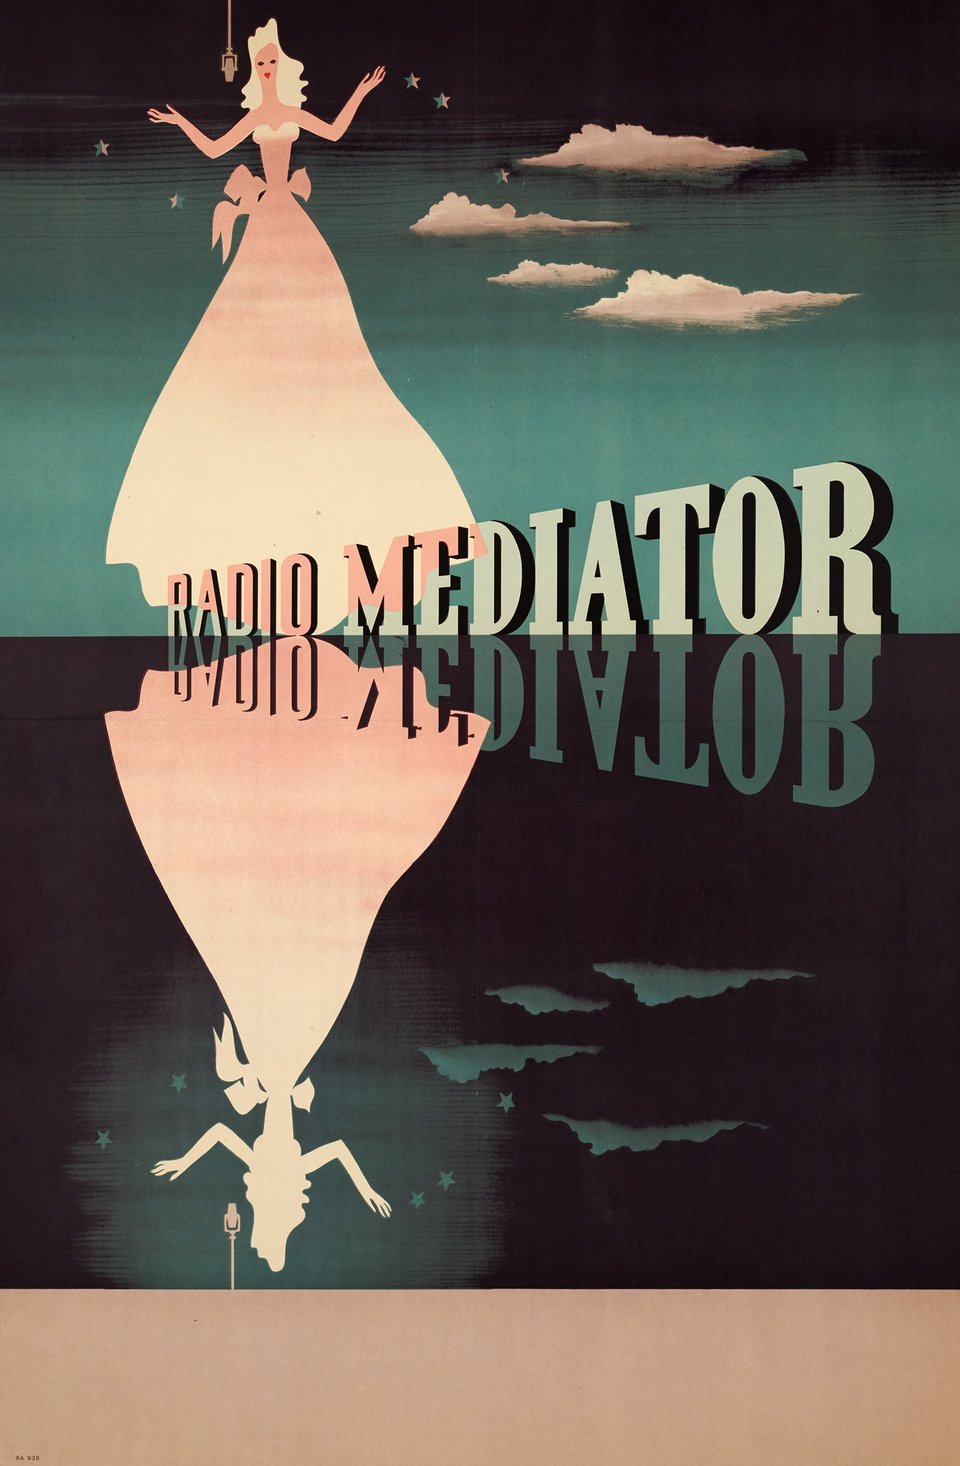 Radio Mediator – Affiche ancienne –  ANONYME – 1950